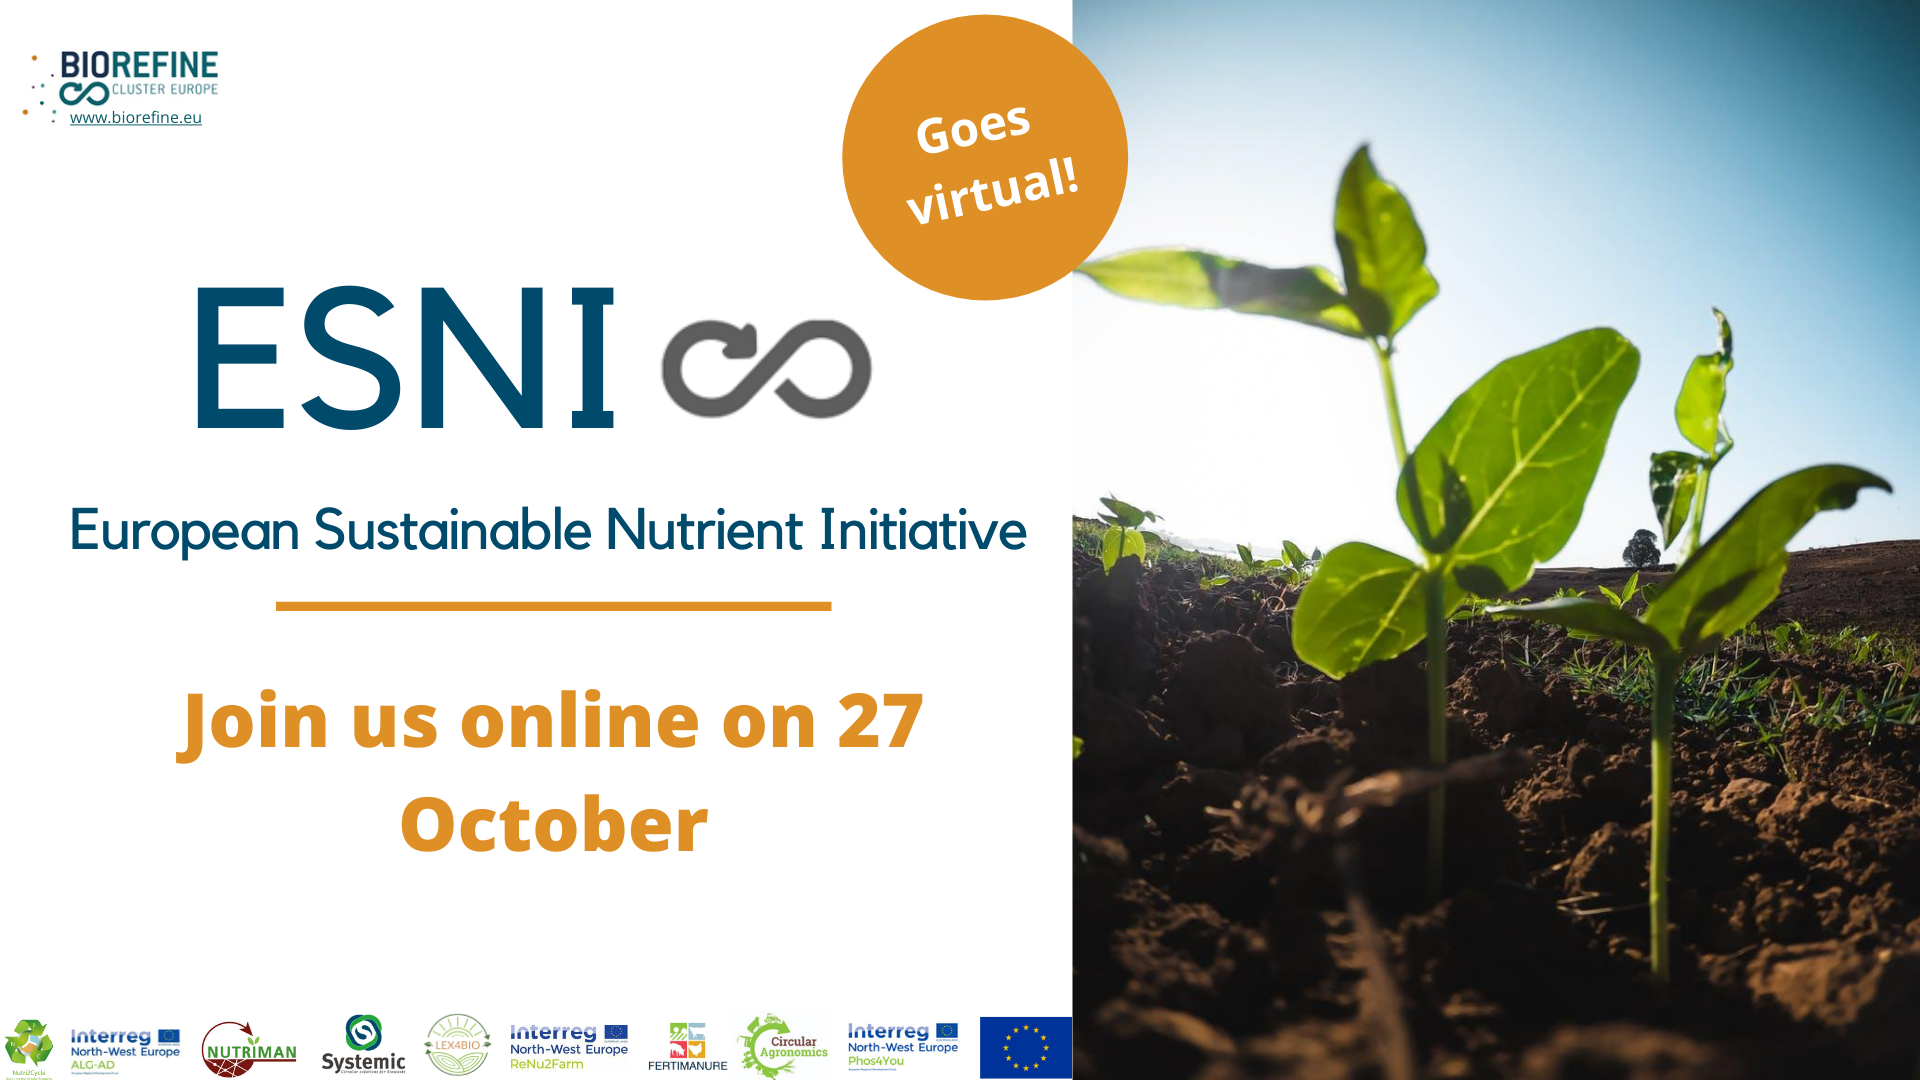 European Sustainable Nutrient Initiative